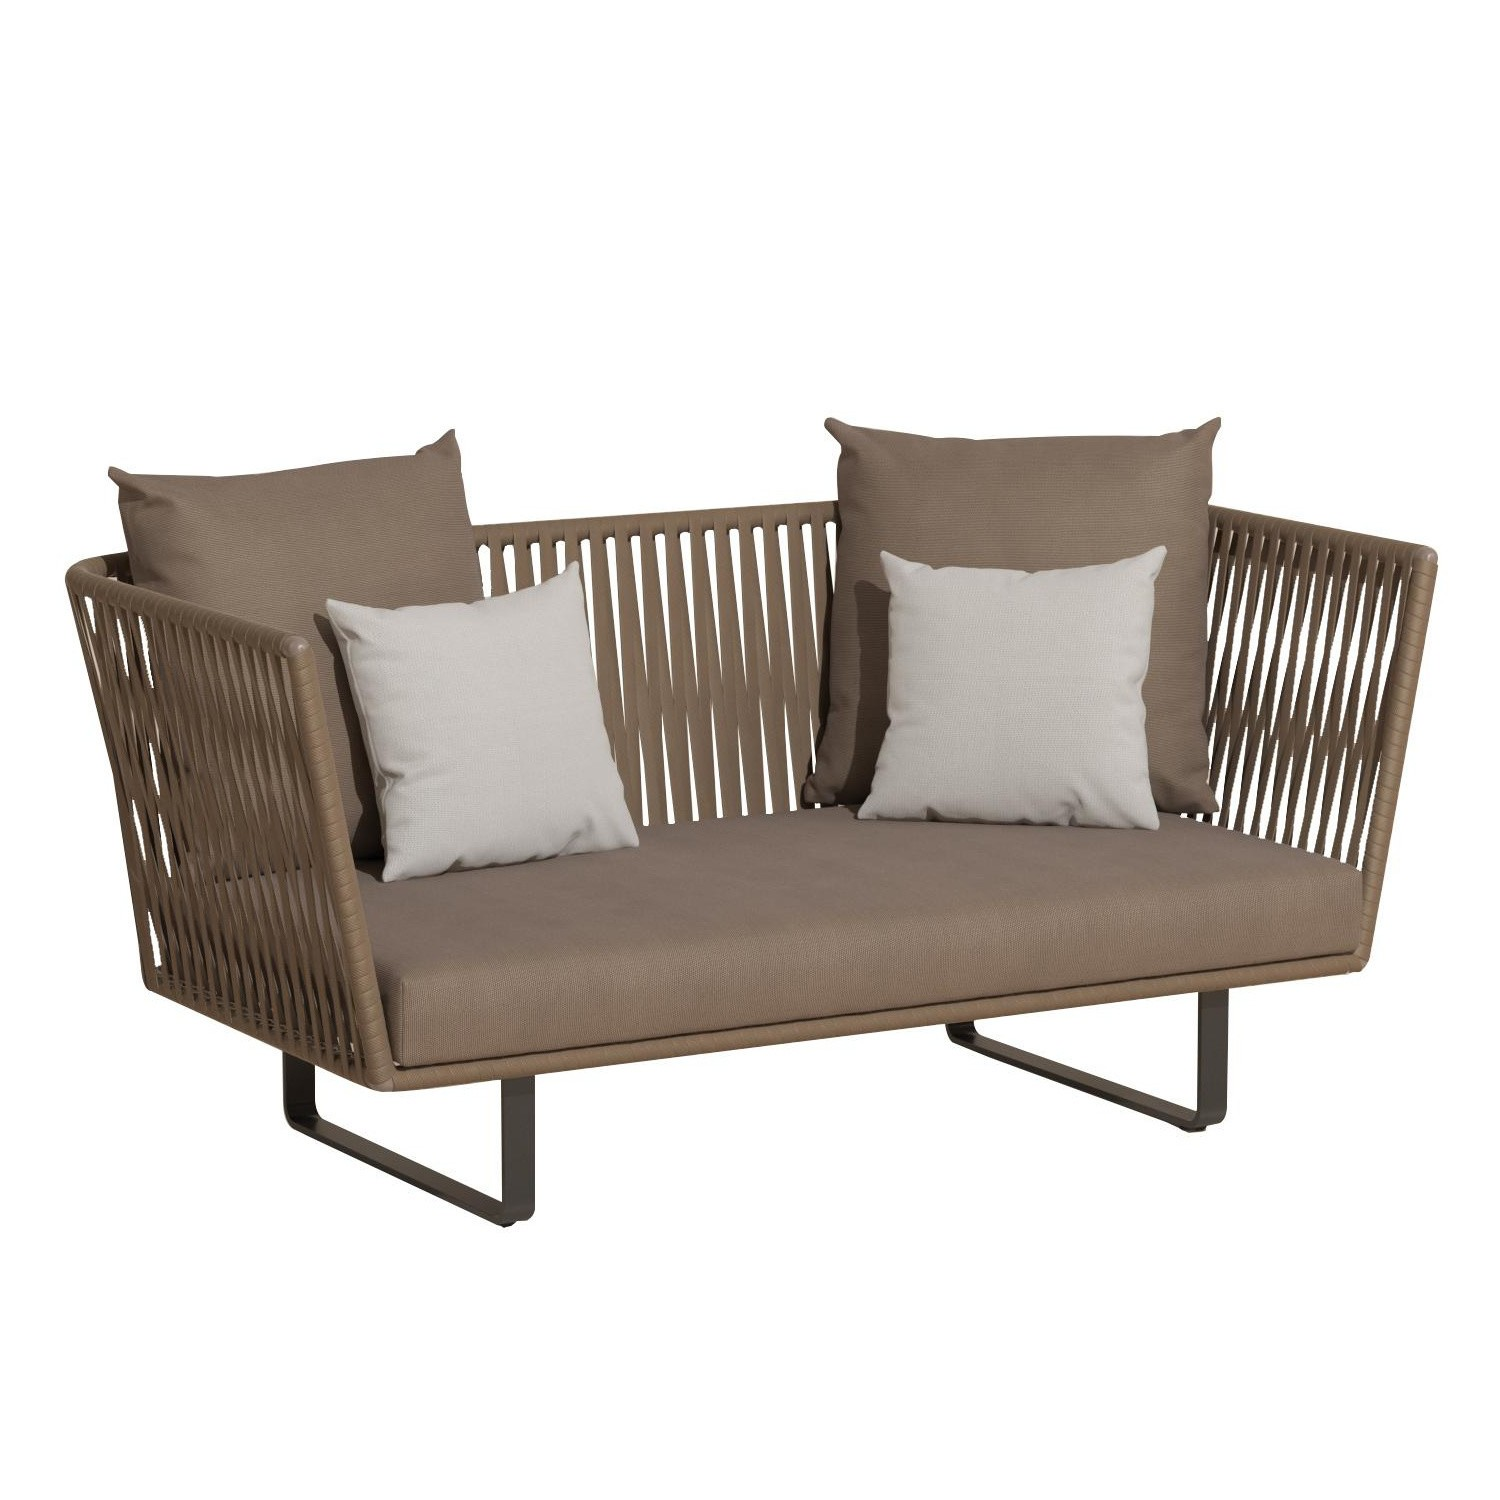 Kettal Bitta 2 Seater Outdoor Sofa Ambientedirect